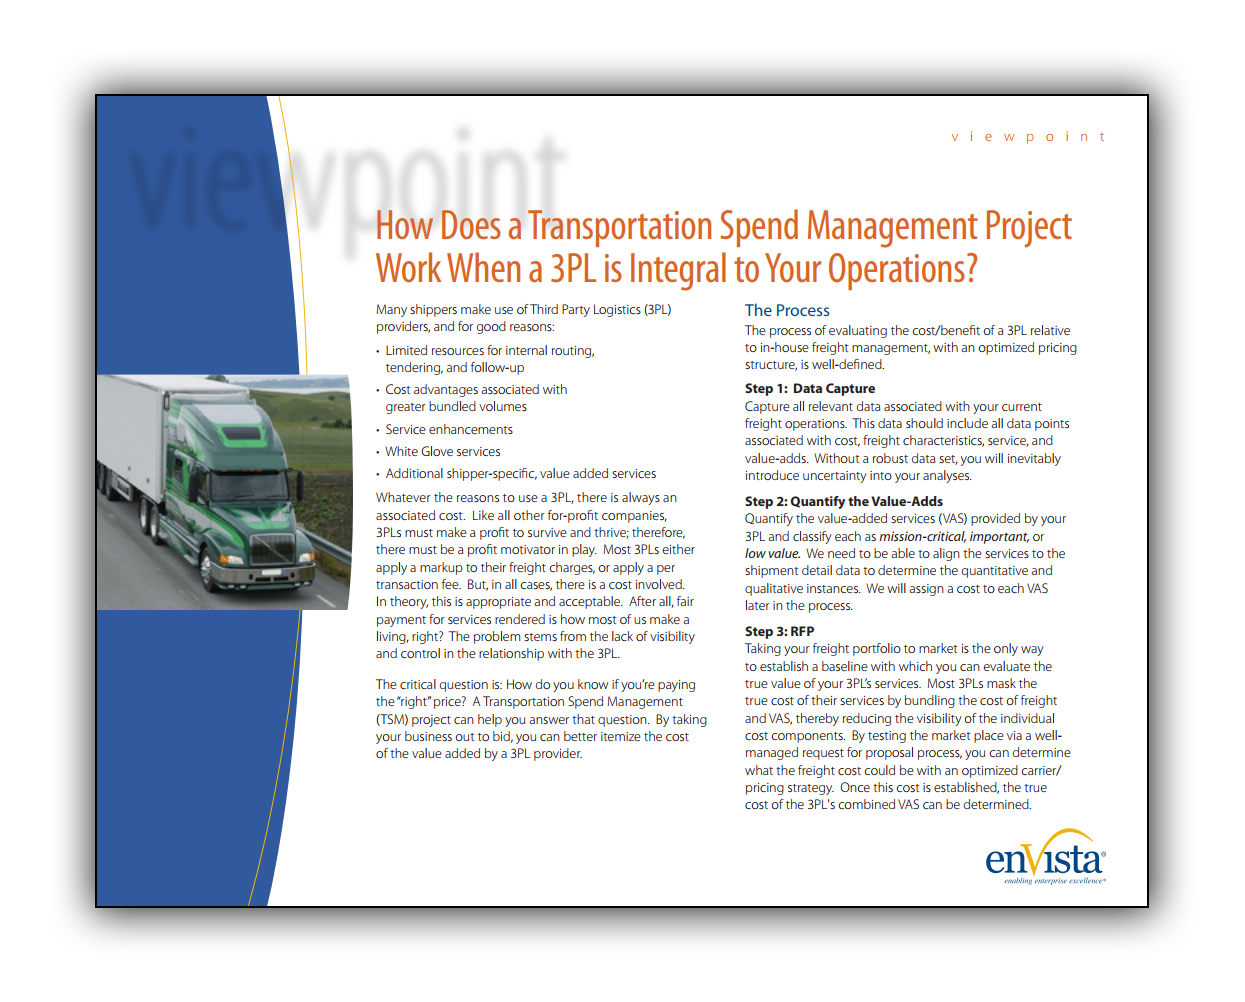 Image_How-does-a-transportation-spend-management-project-work-when-a-3pl-is-integral-to-your-operations.png